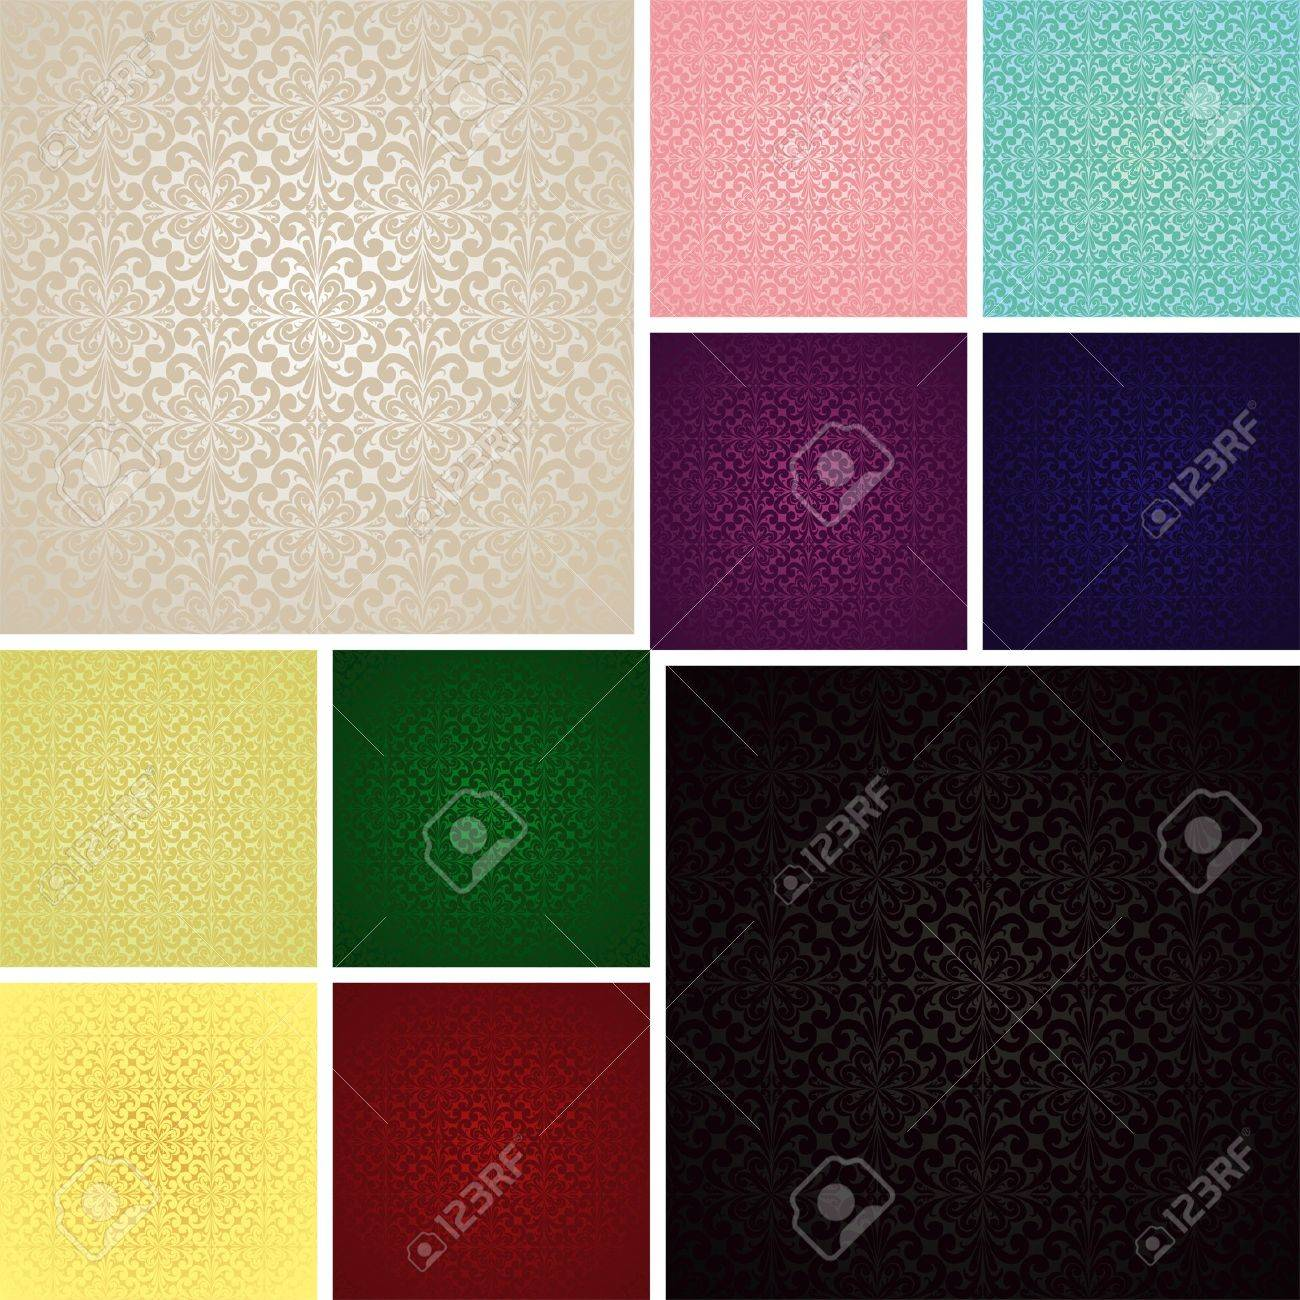 Seamless wallpapers - set of ten colors (EPS 10) - 15238980